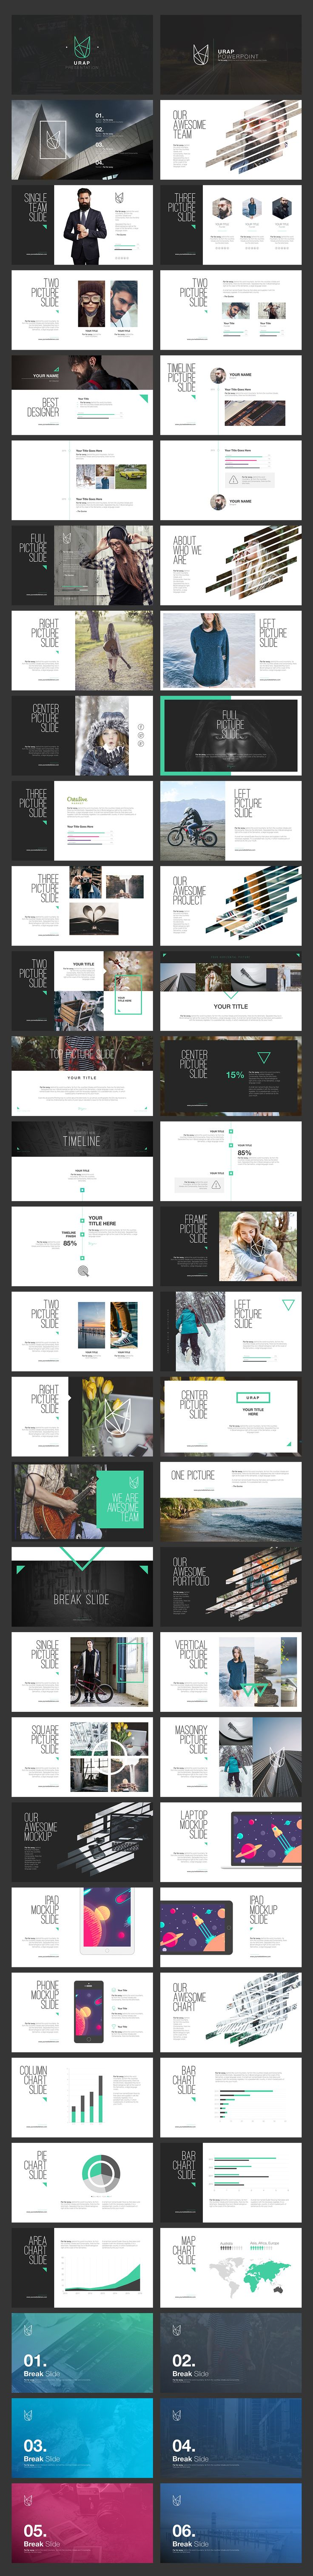 URAP PowerPoint Template